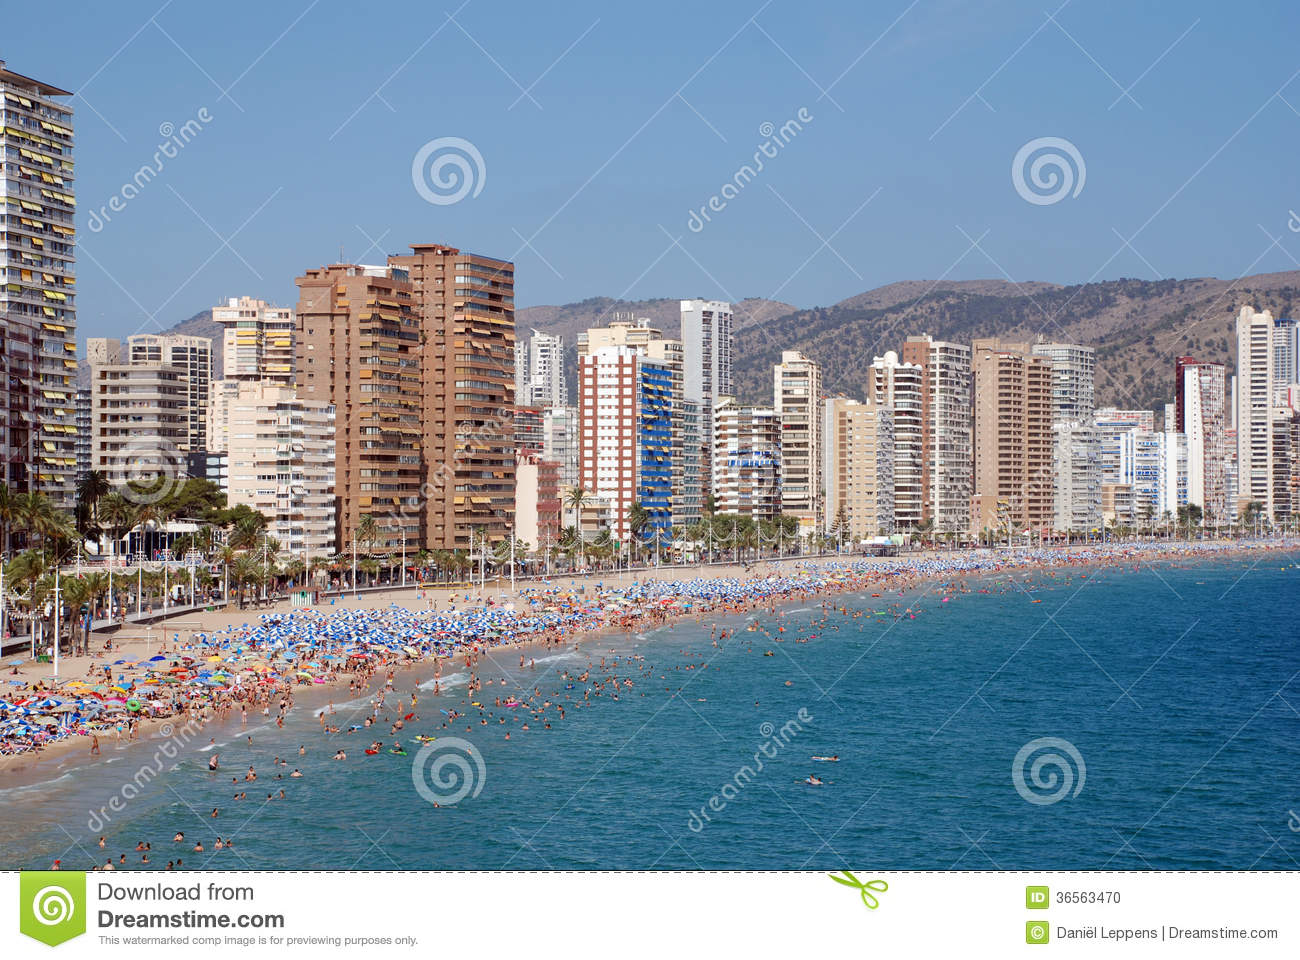 Benidorm - Costa Blanca Spain  city pictures gallery : The city Benidorm on the Costa Blanca Spain .